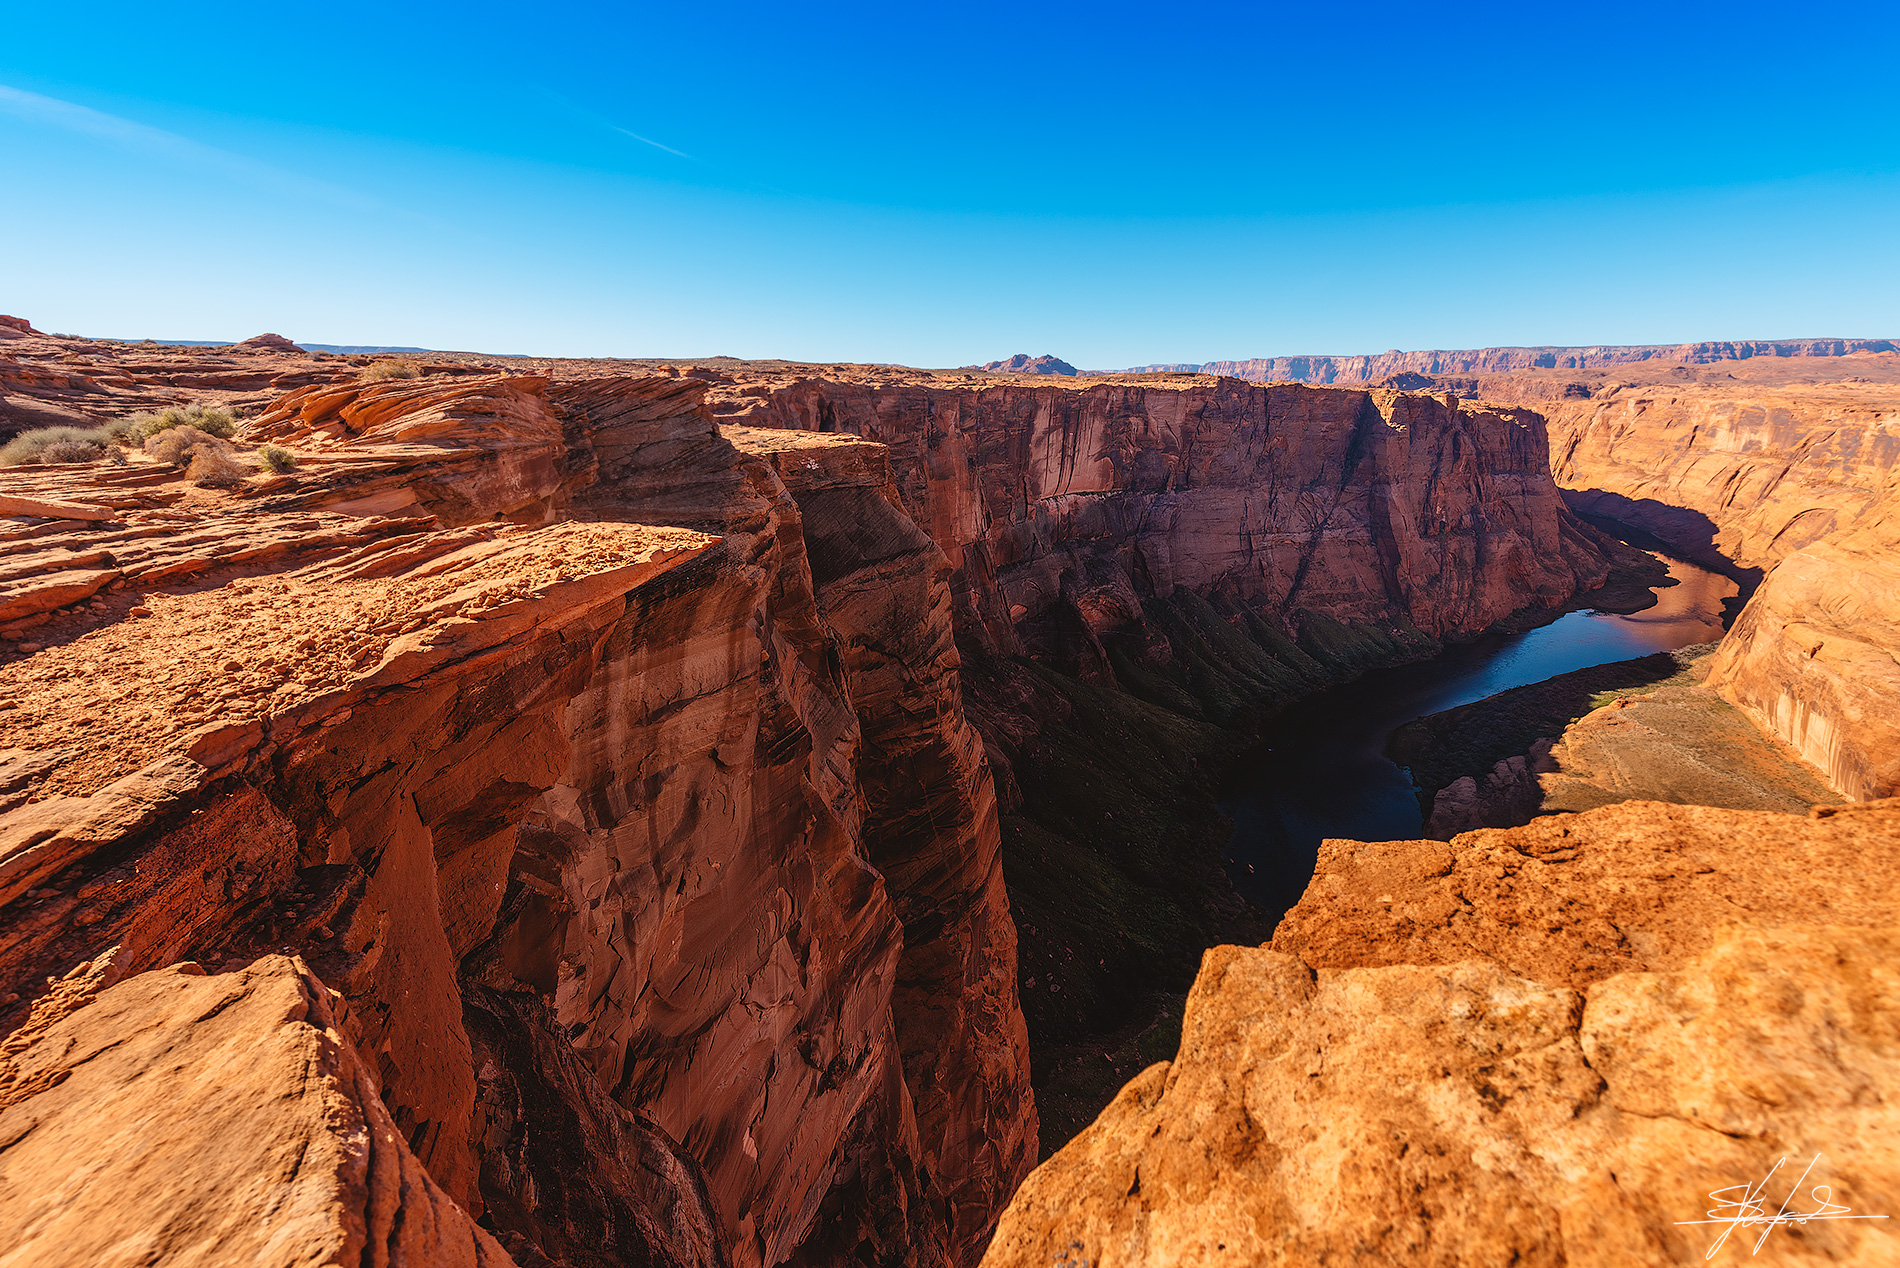 View from the Horseshoe Bend